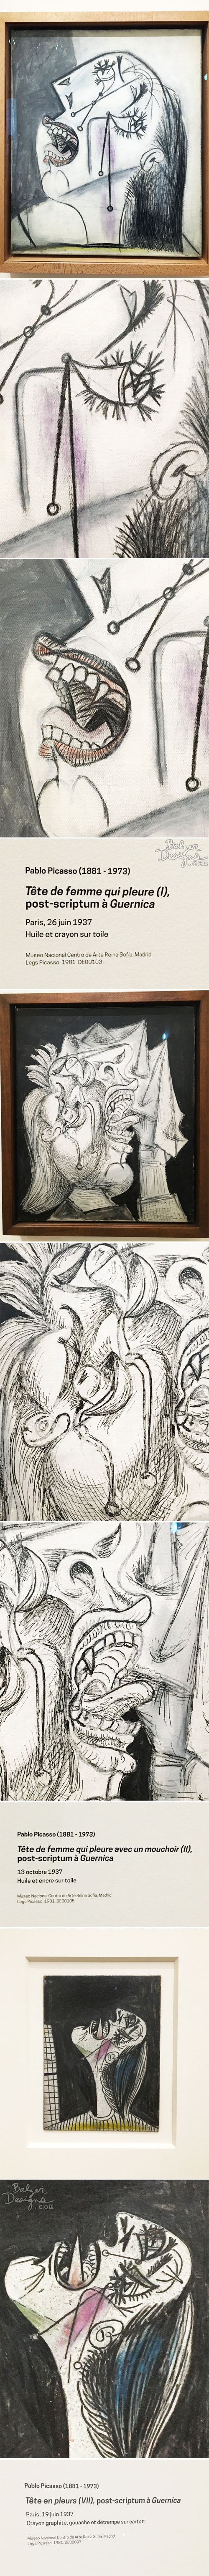 From the Balzer Designs Blog: Picasso Museum: Part Two